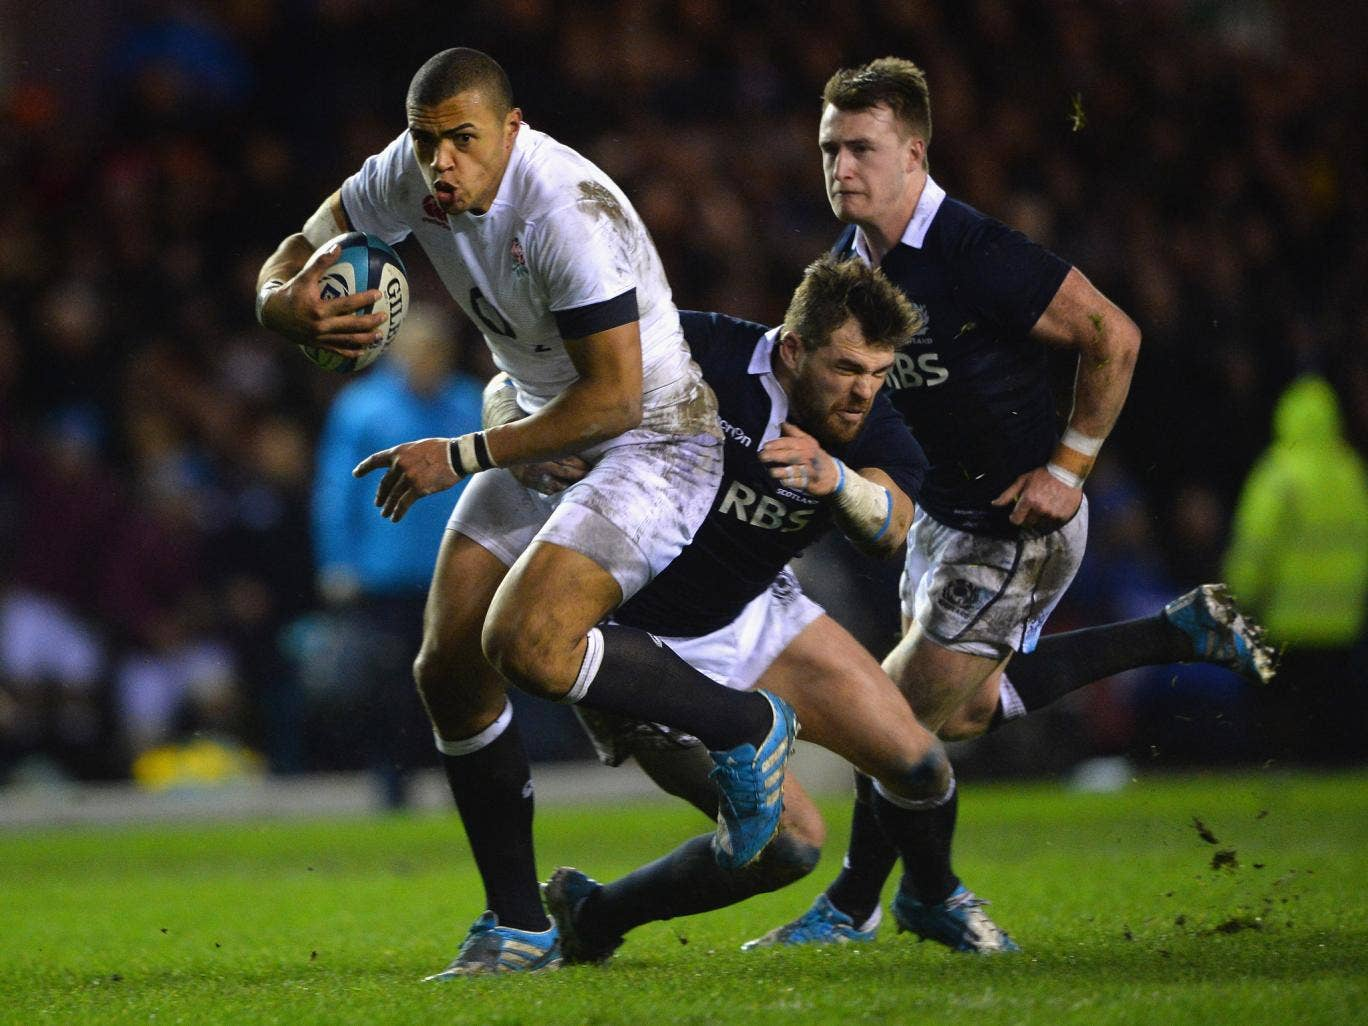 Luther Burrell scored his second try in as many games for England in the 20-0 victory over Scotland